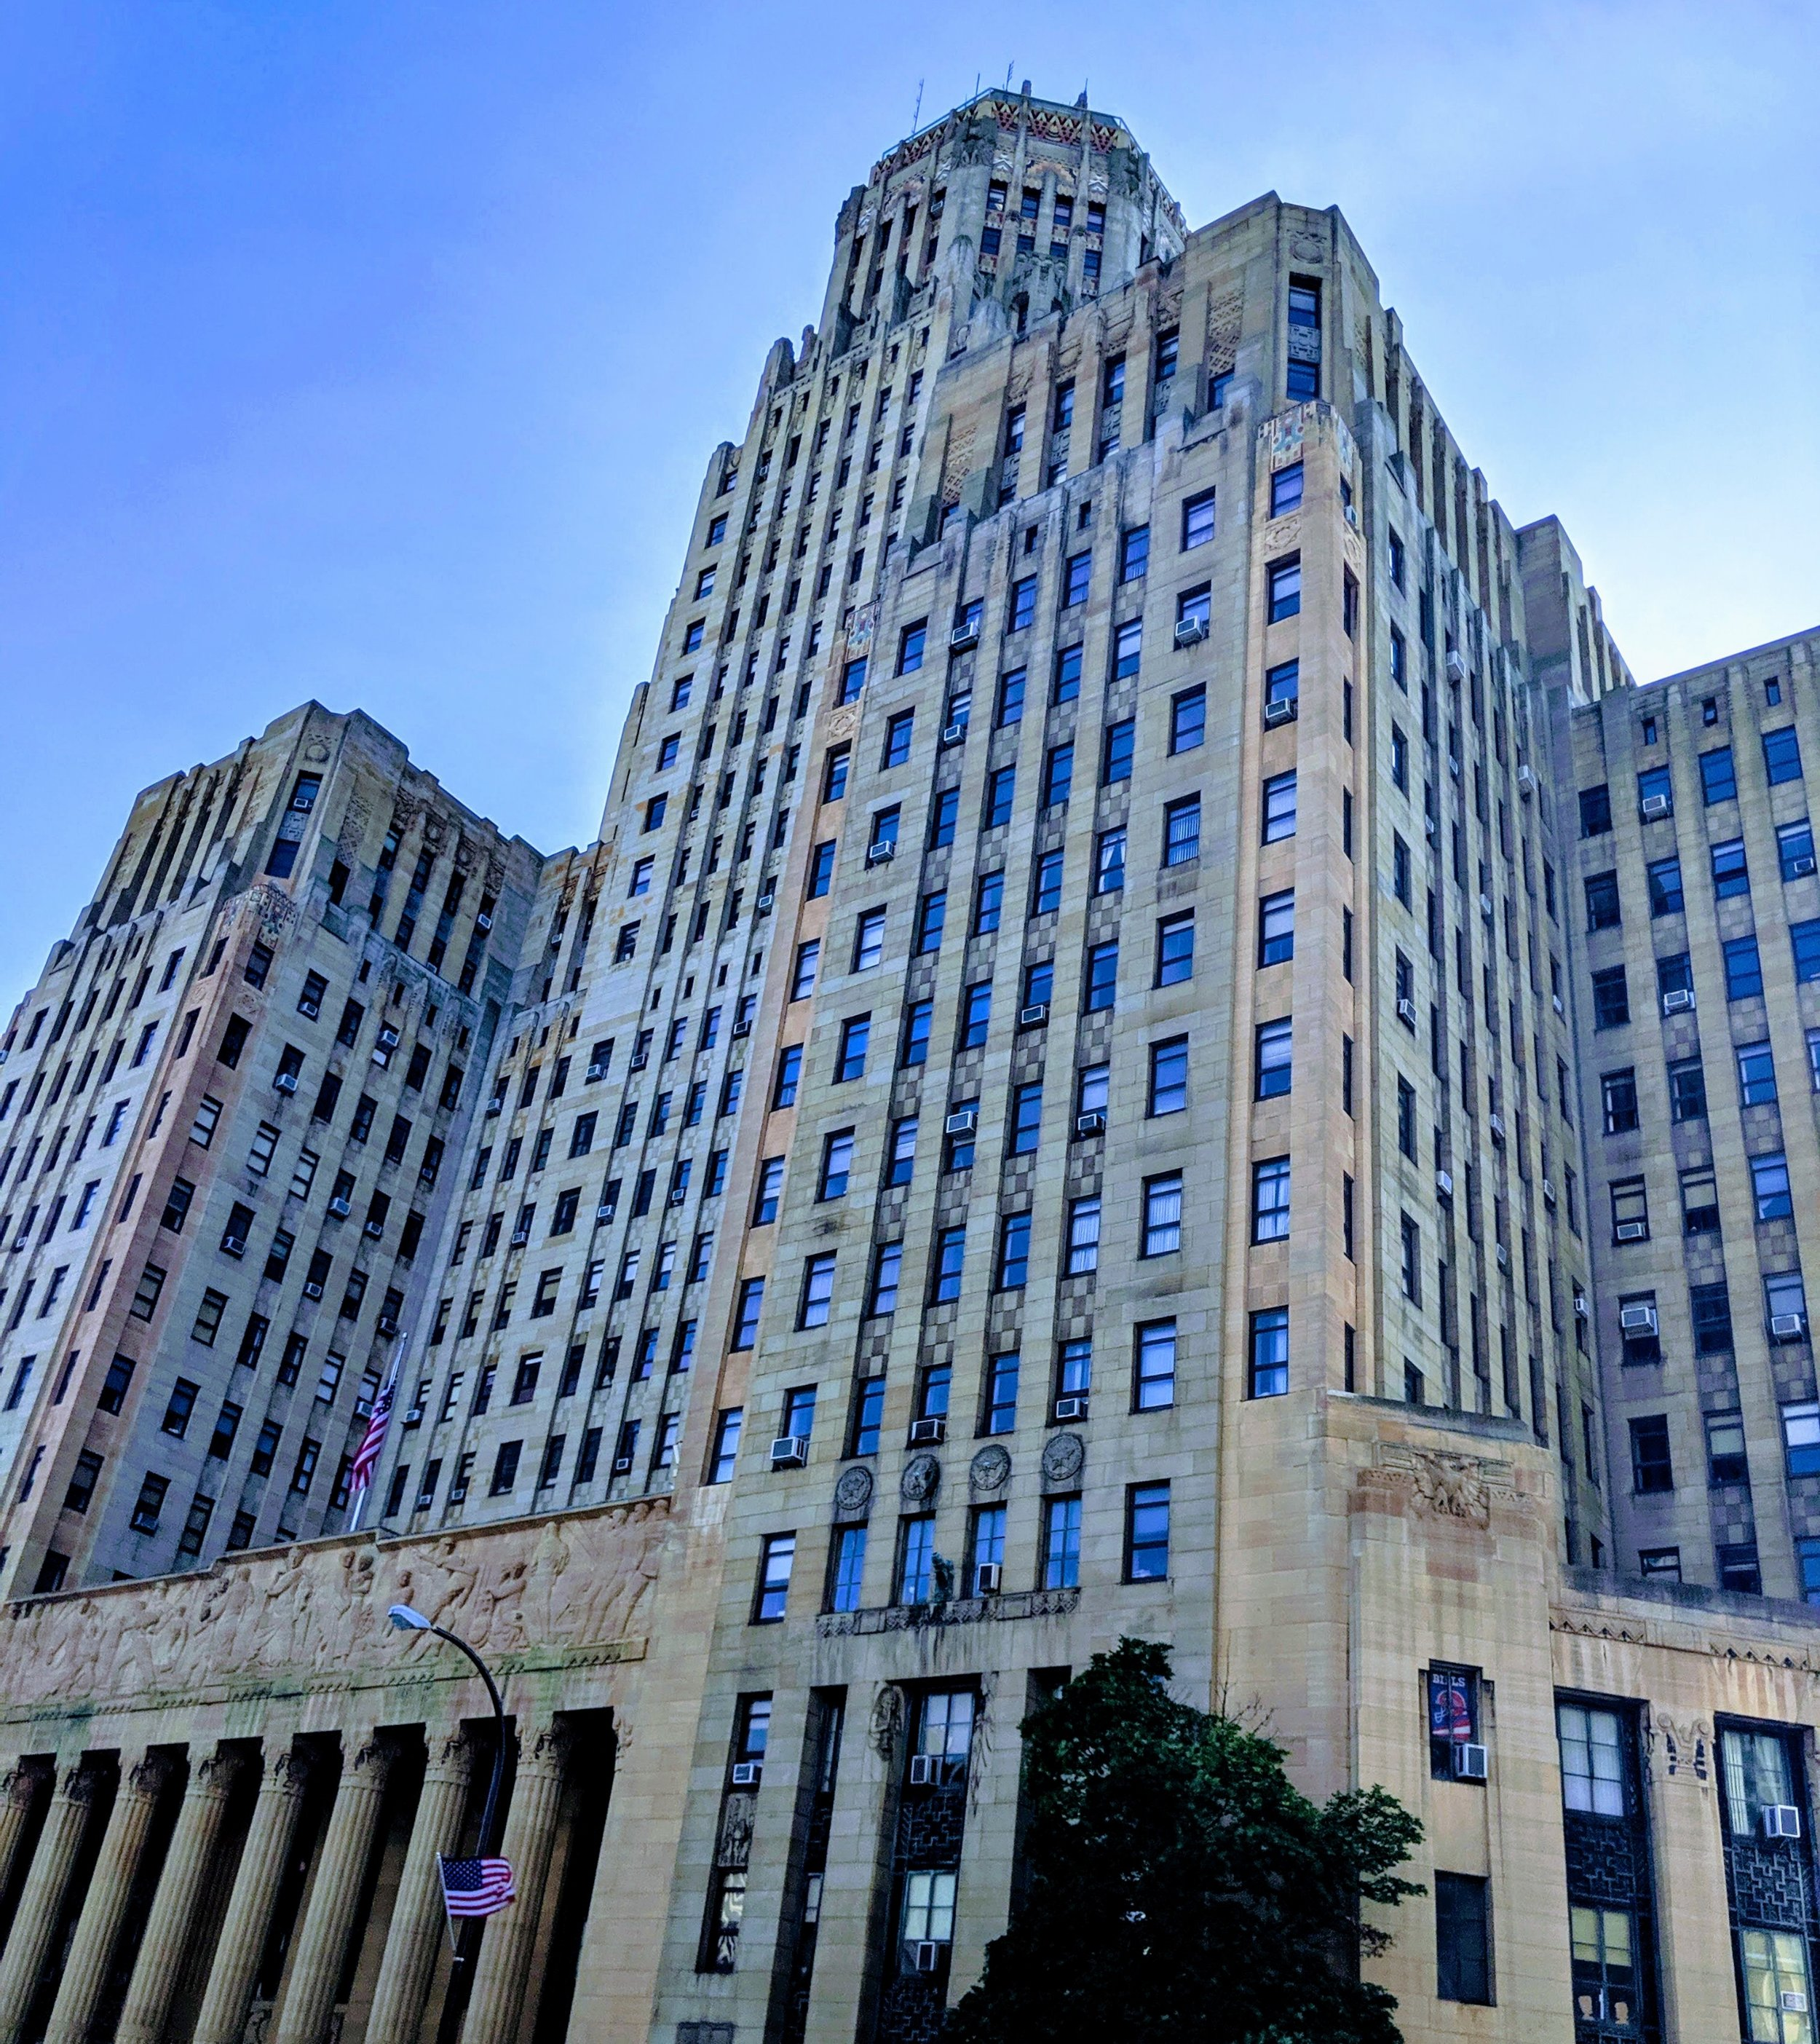 The Buffalo City Hall is a 32-story Art Deco building was designed and built with a non-powered air-conditioning system, taking advantage of strong winds from Lake Erie. Large vents were placed on the west side of the building to catch the wind, which would then travel down ducts to beneath the basement, to be cooled by the ground. This cooled air was then vented throughout the building.